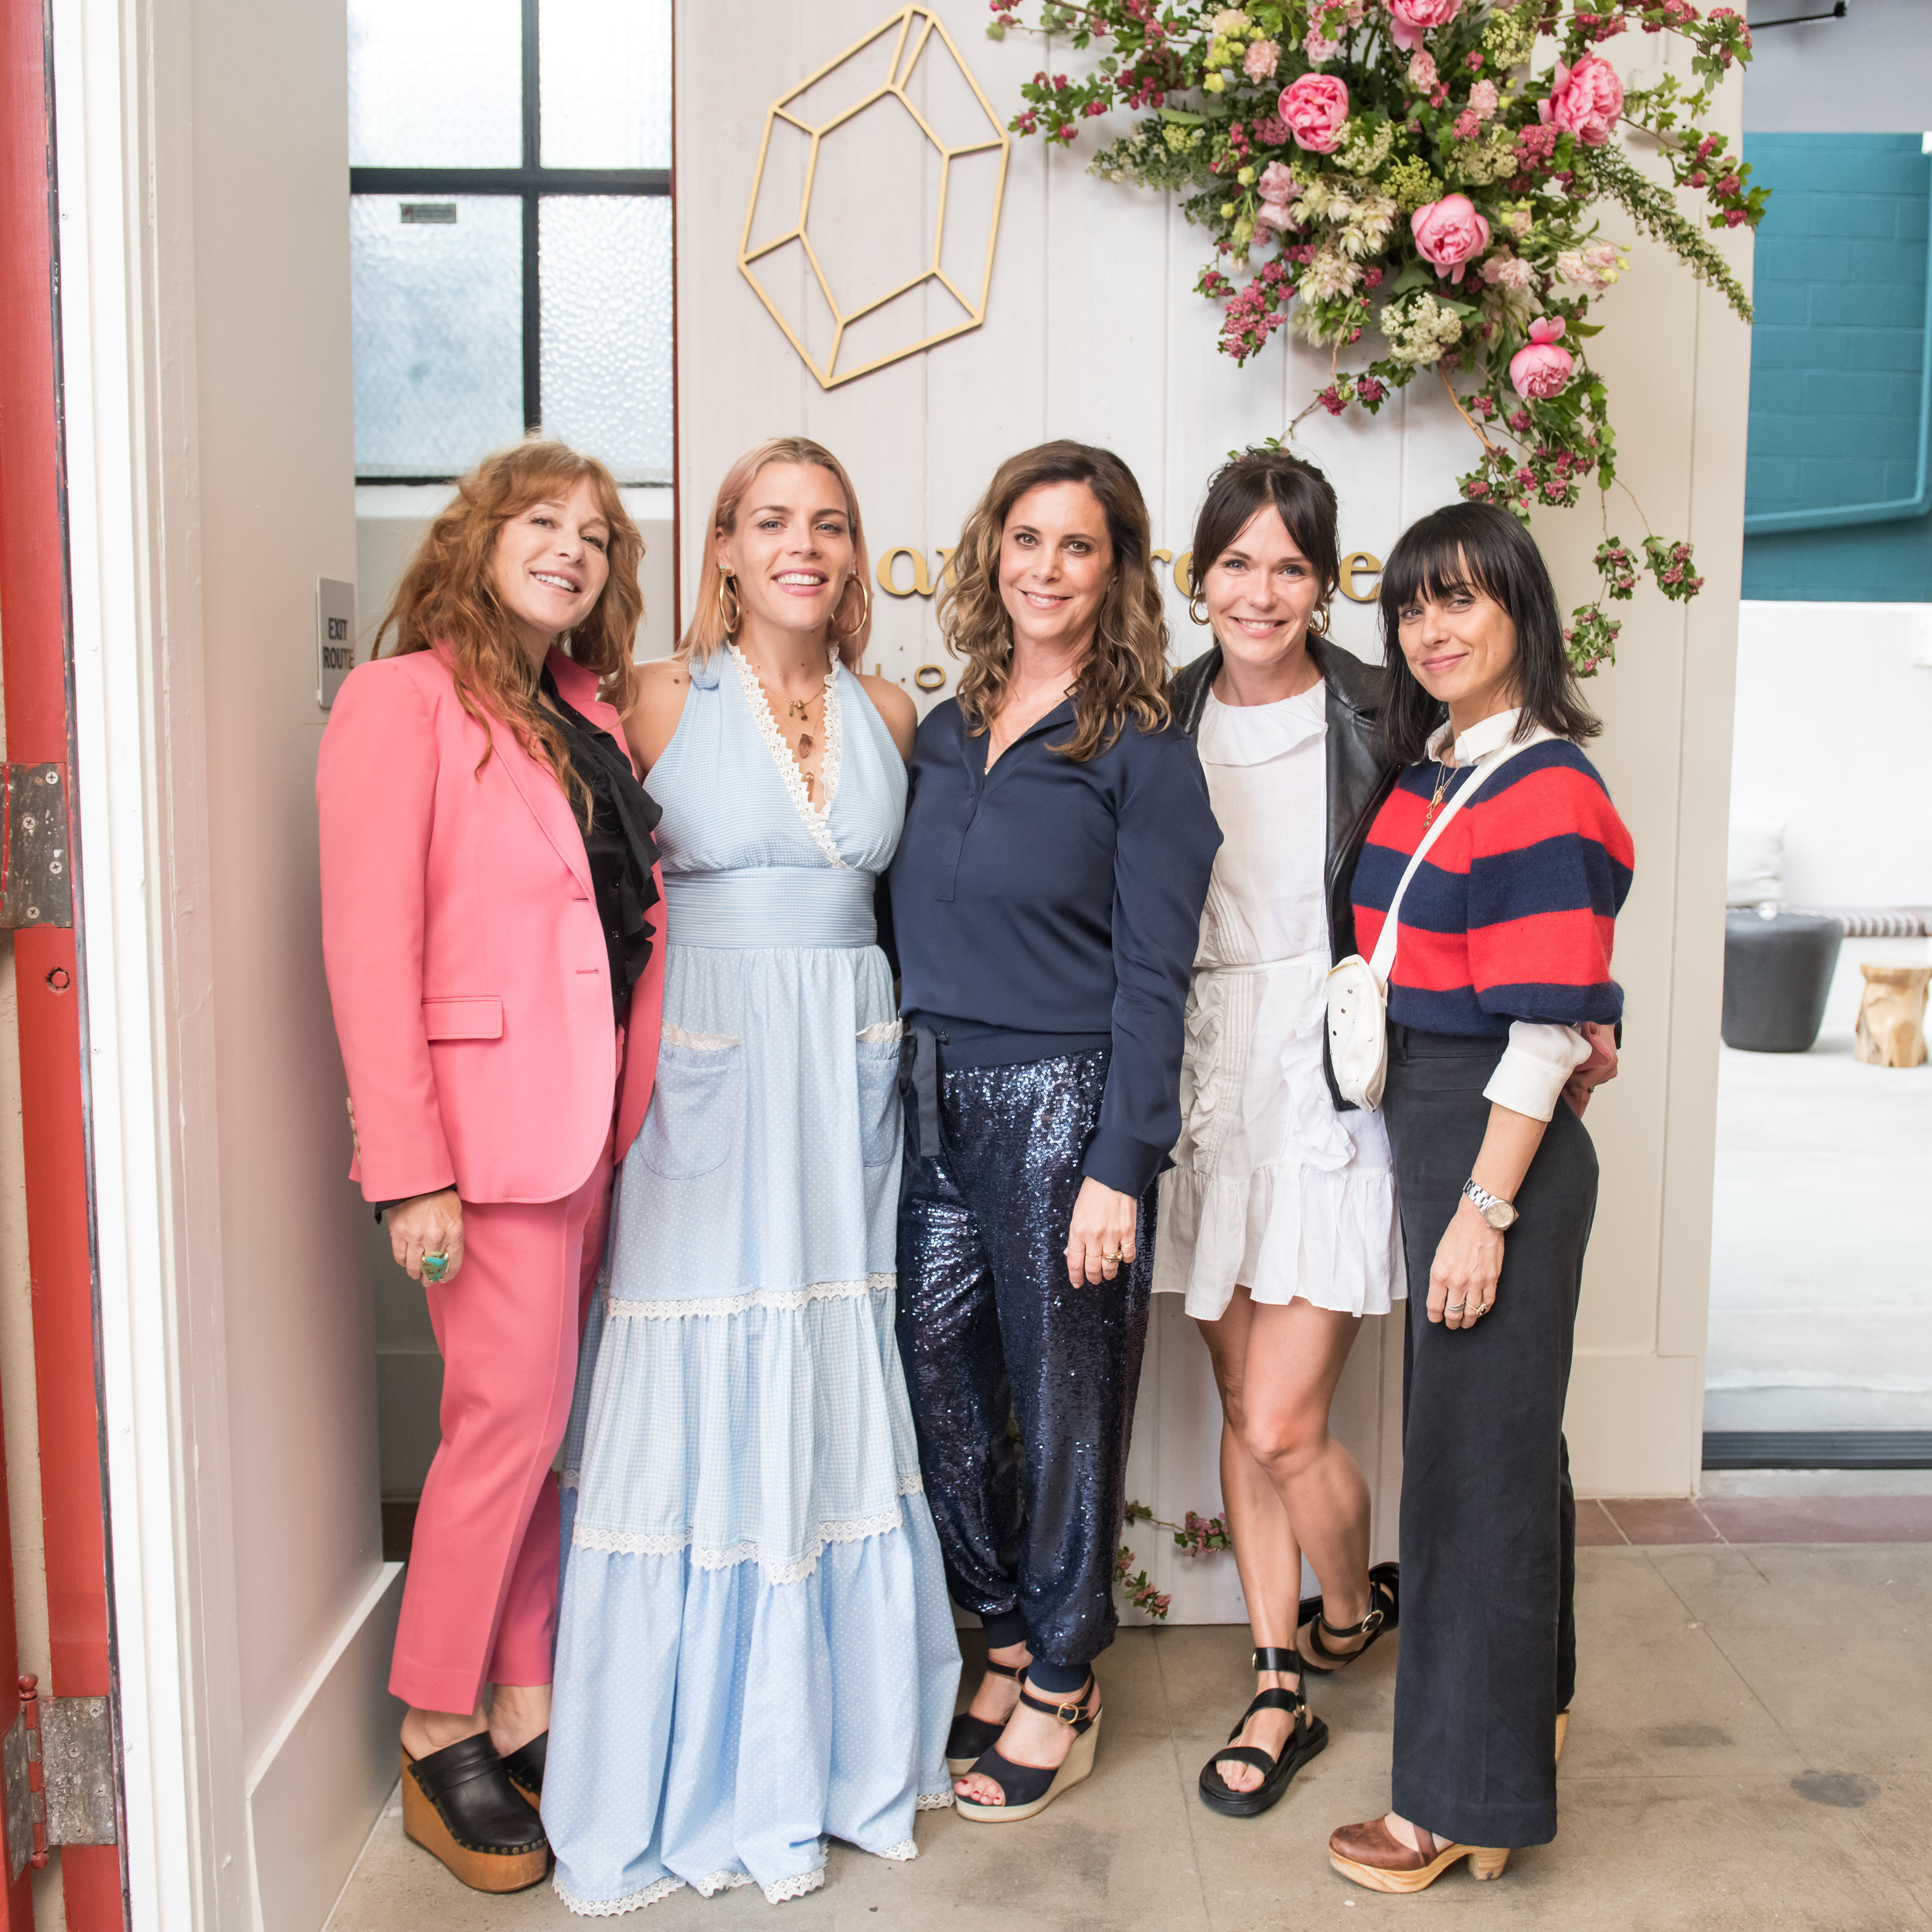 Kimberly Muller, Busy Philipps, Maya Brenner, Katie Aselton, Constance Zimmer at the 20th Anniversary Event